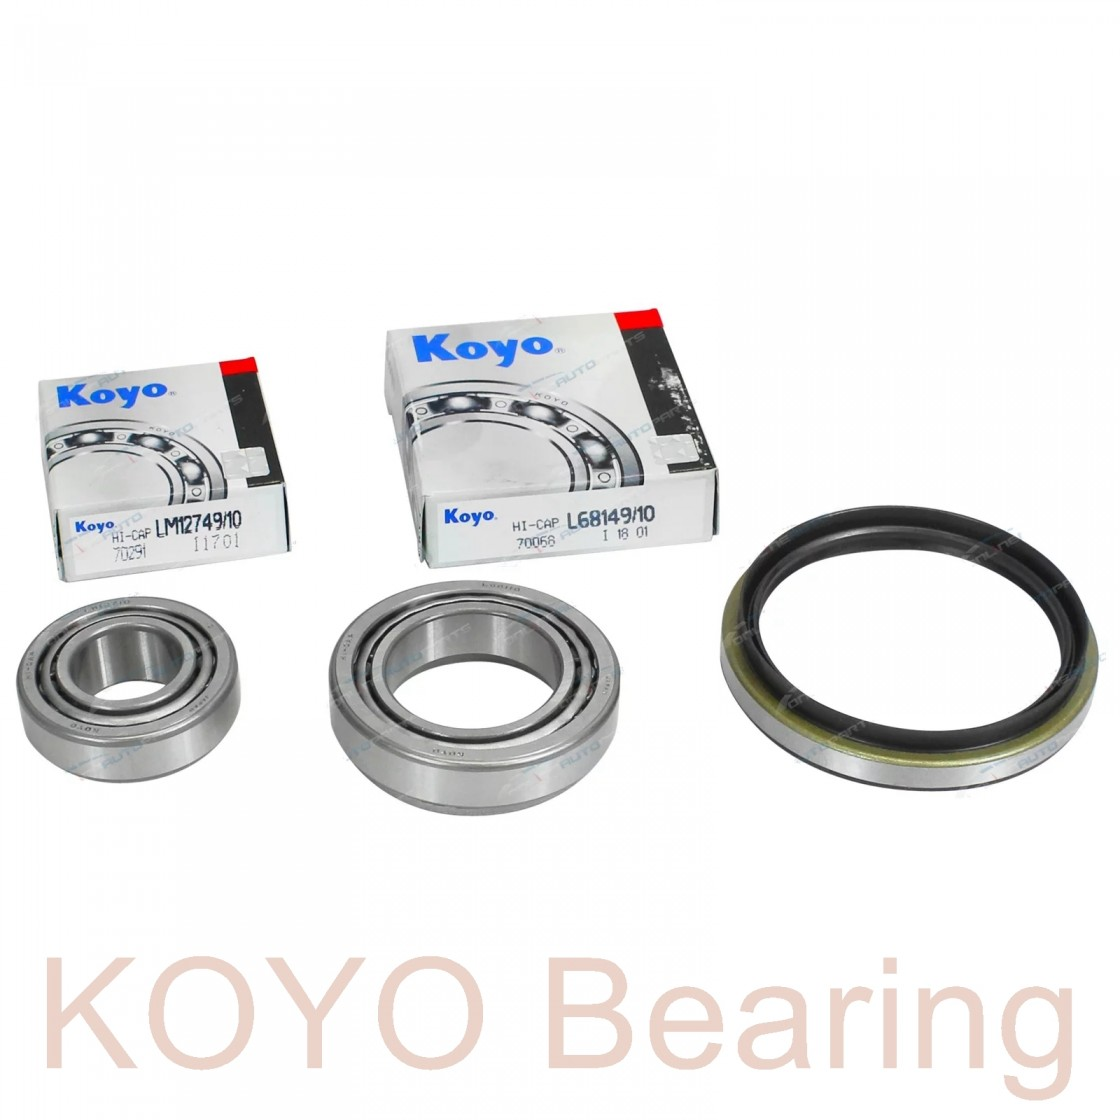 KOYO TP4668-2 needle roller bearings